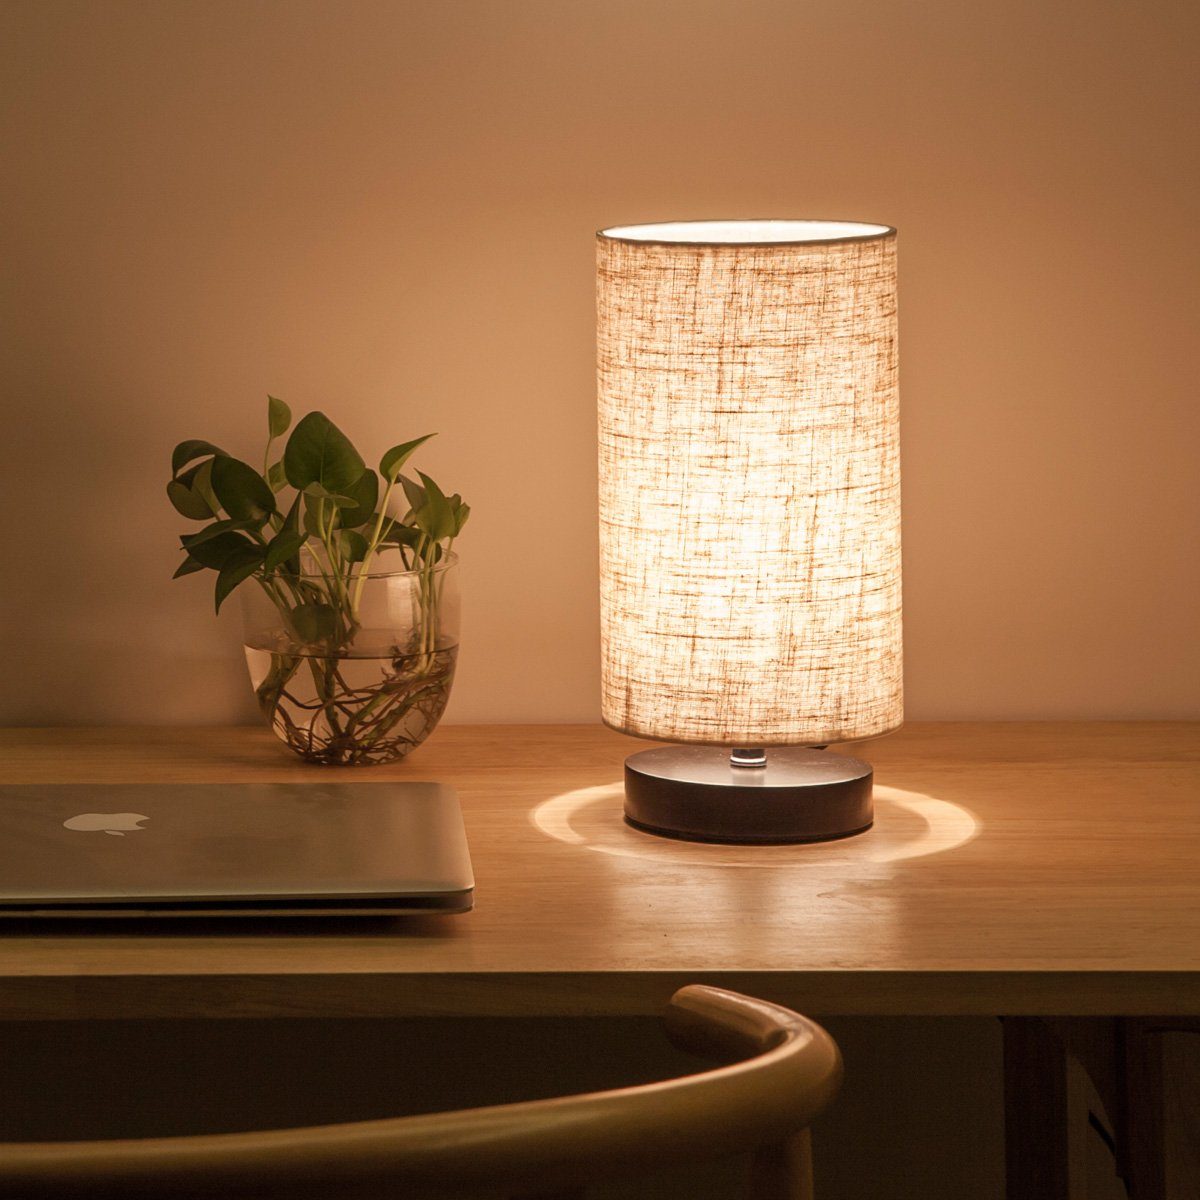 Lifeholder Table Lamp, Bedside Nightstand Lamp, Simple Desk Lamp, Fabric Wooden Table Lamp for Bedroom Living Room Office Study, Cylinder Black Base by lifeholder (Image #5)